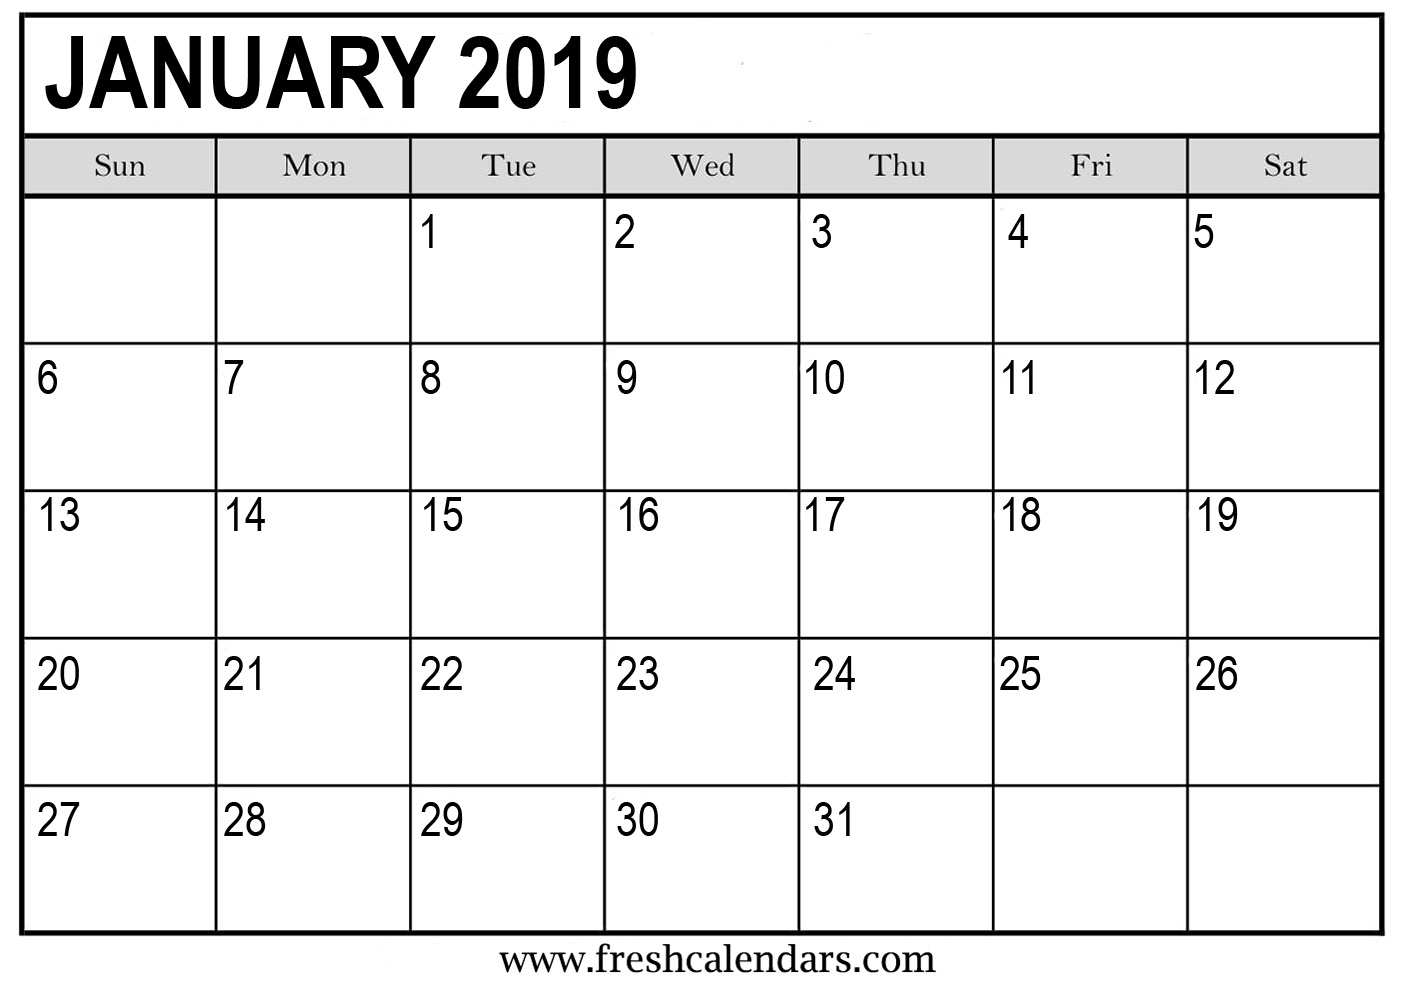 Templates of January 2019 Calendar